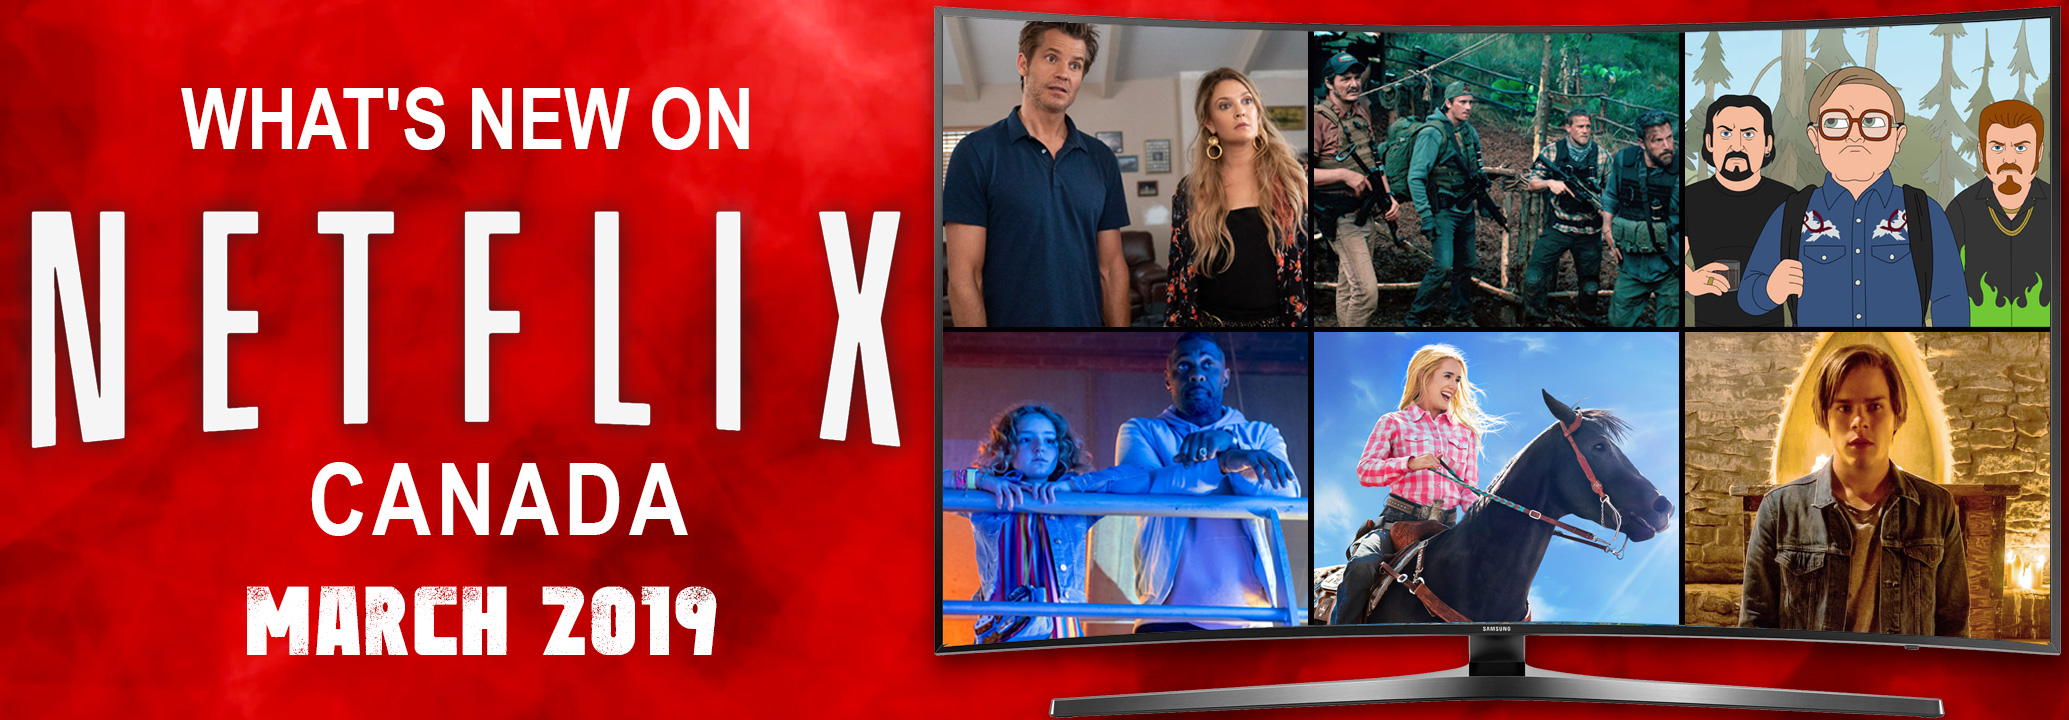 What's New on Netflix Canada March 2019